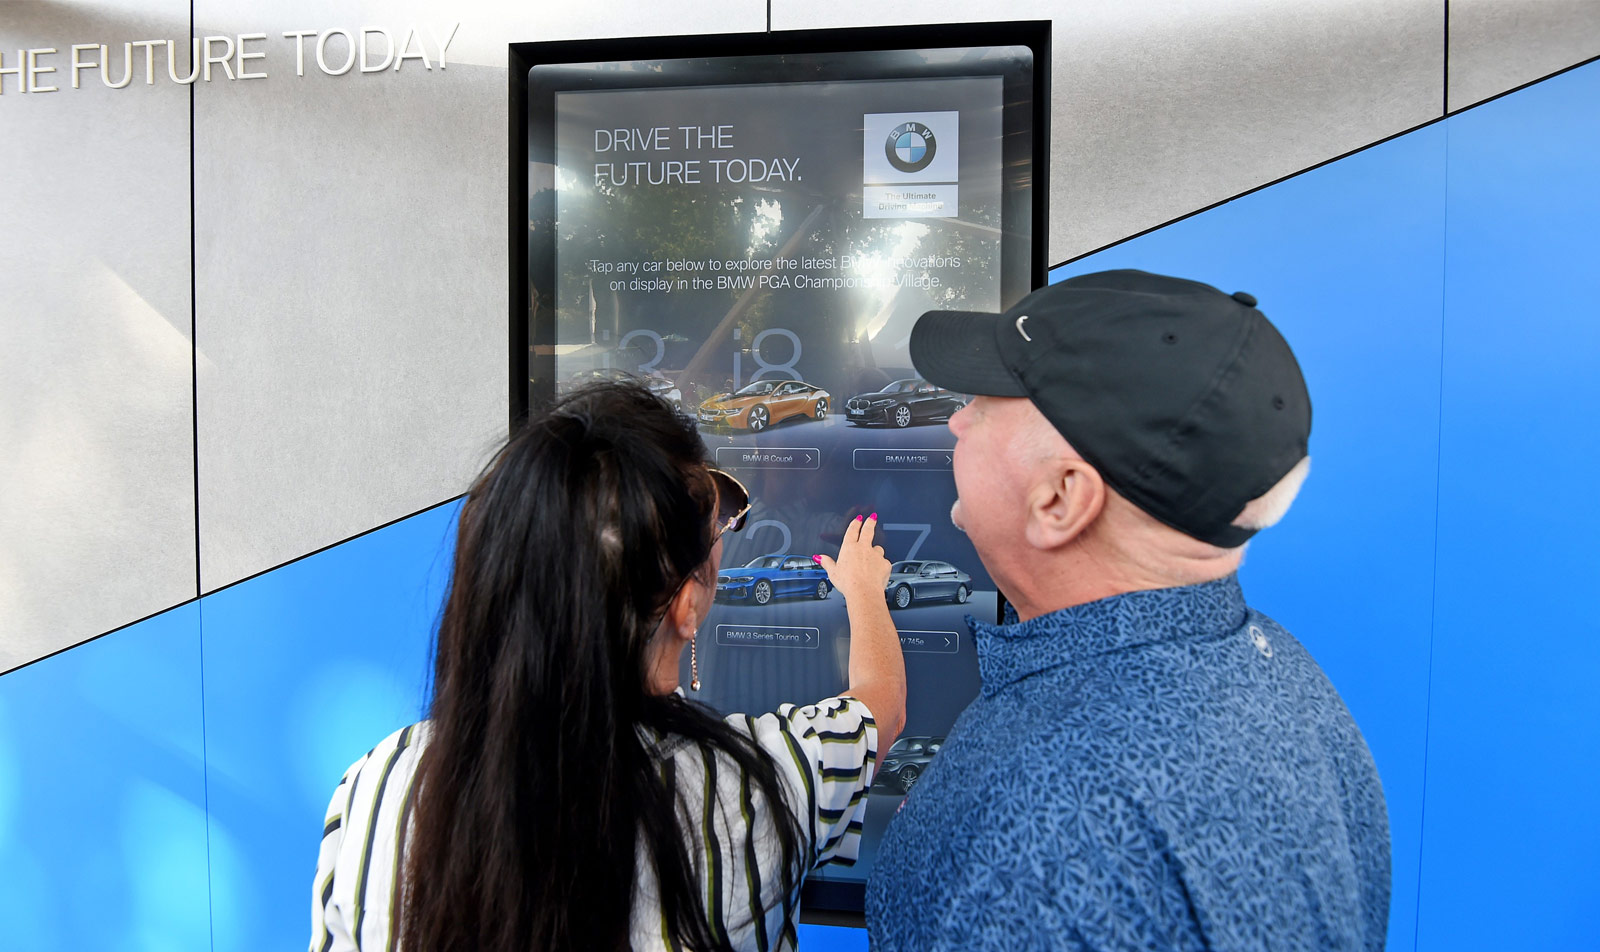 woman and man interacting with BMW interactive touchscreen app displayed on grey and blue wall